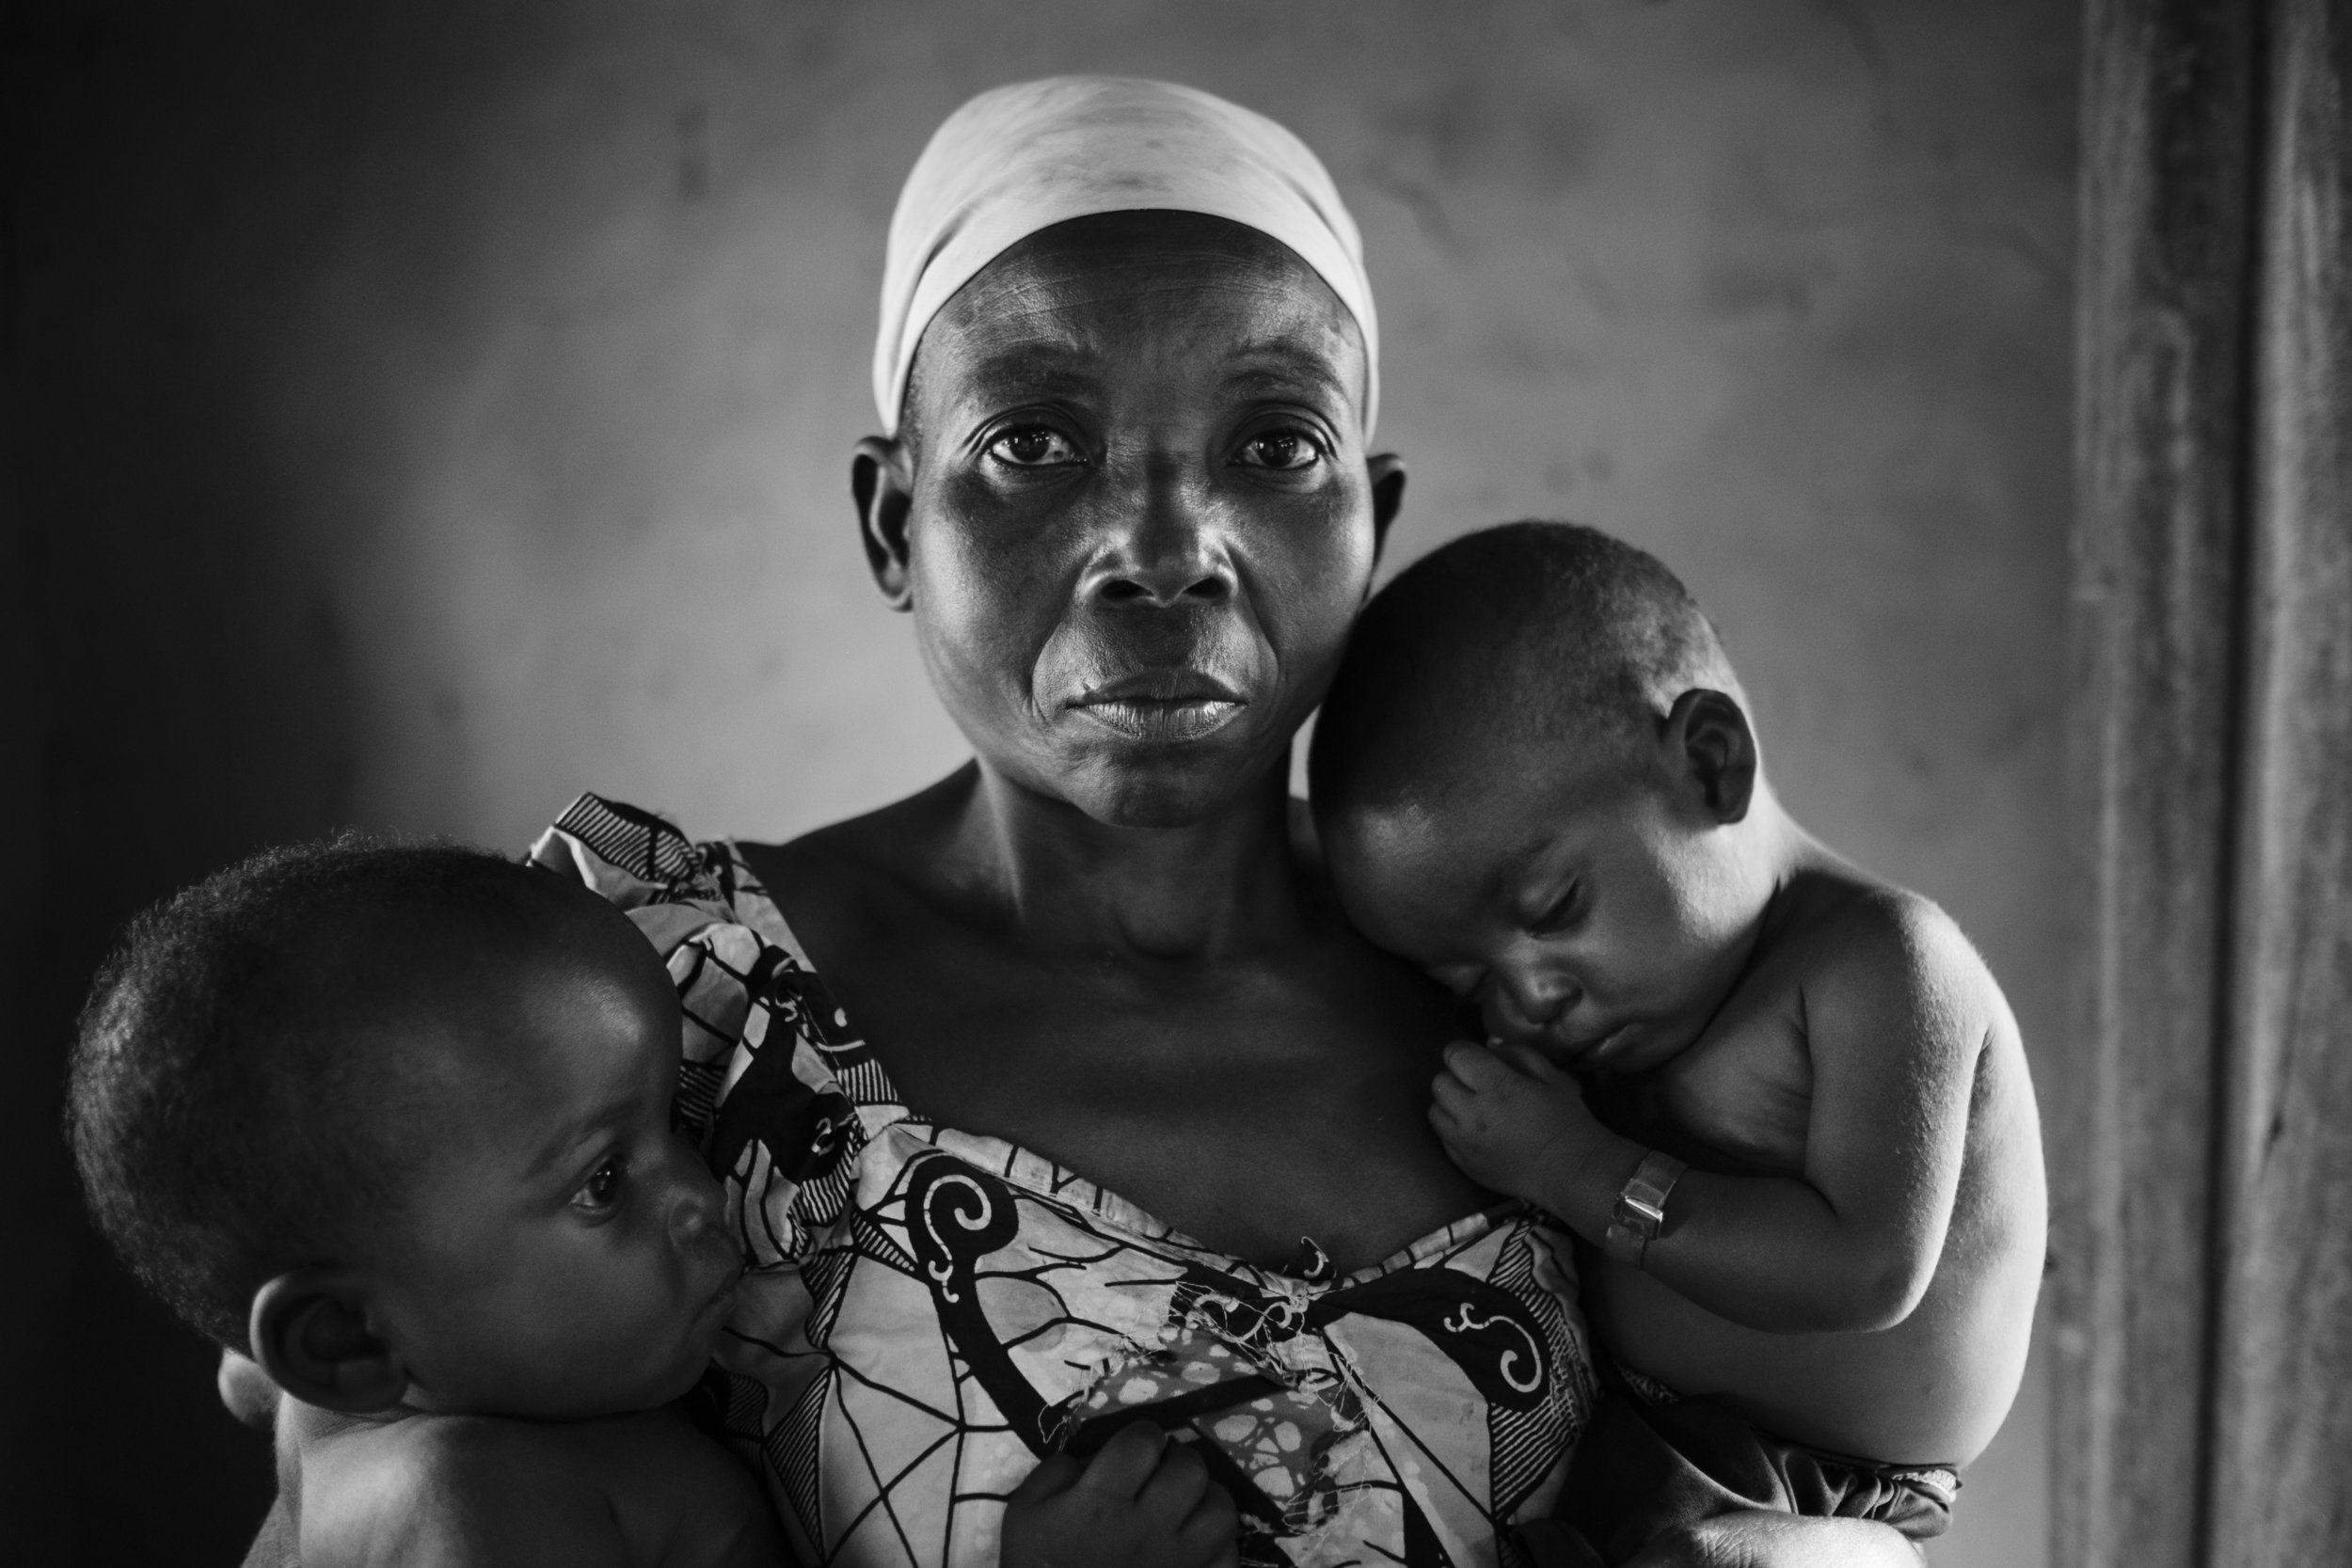 Congo DR, Kasai Central, Lwemba, 16 March 2018